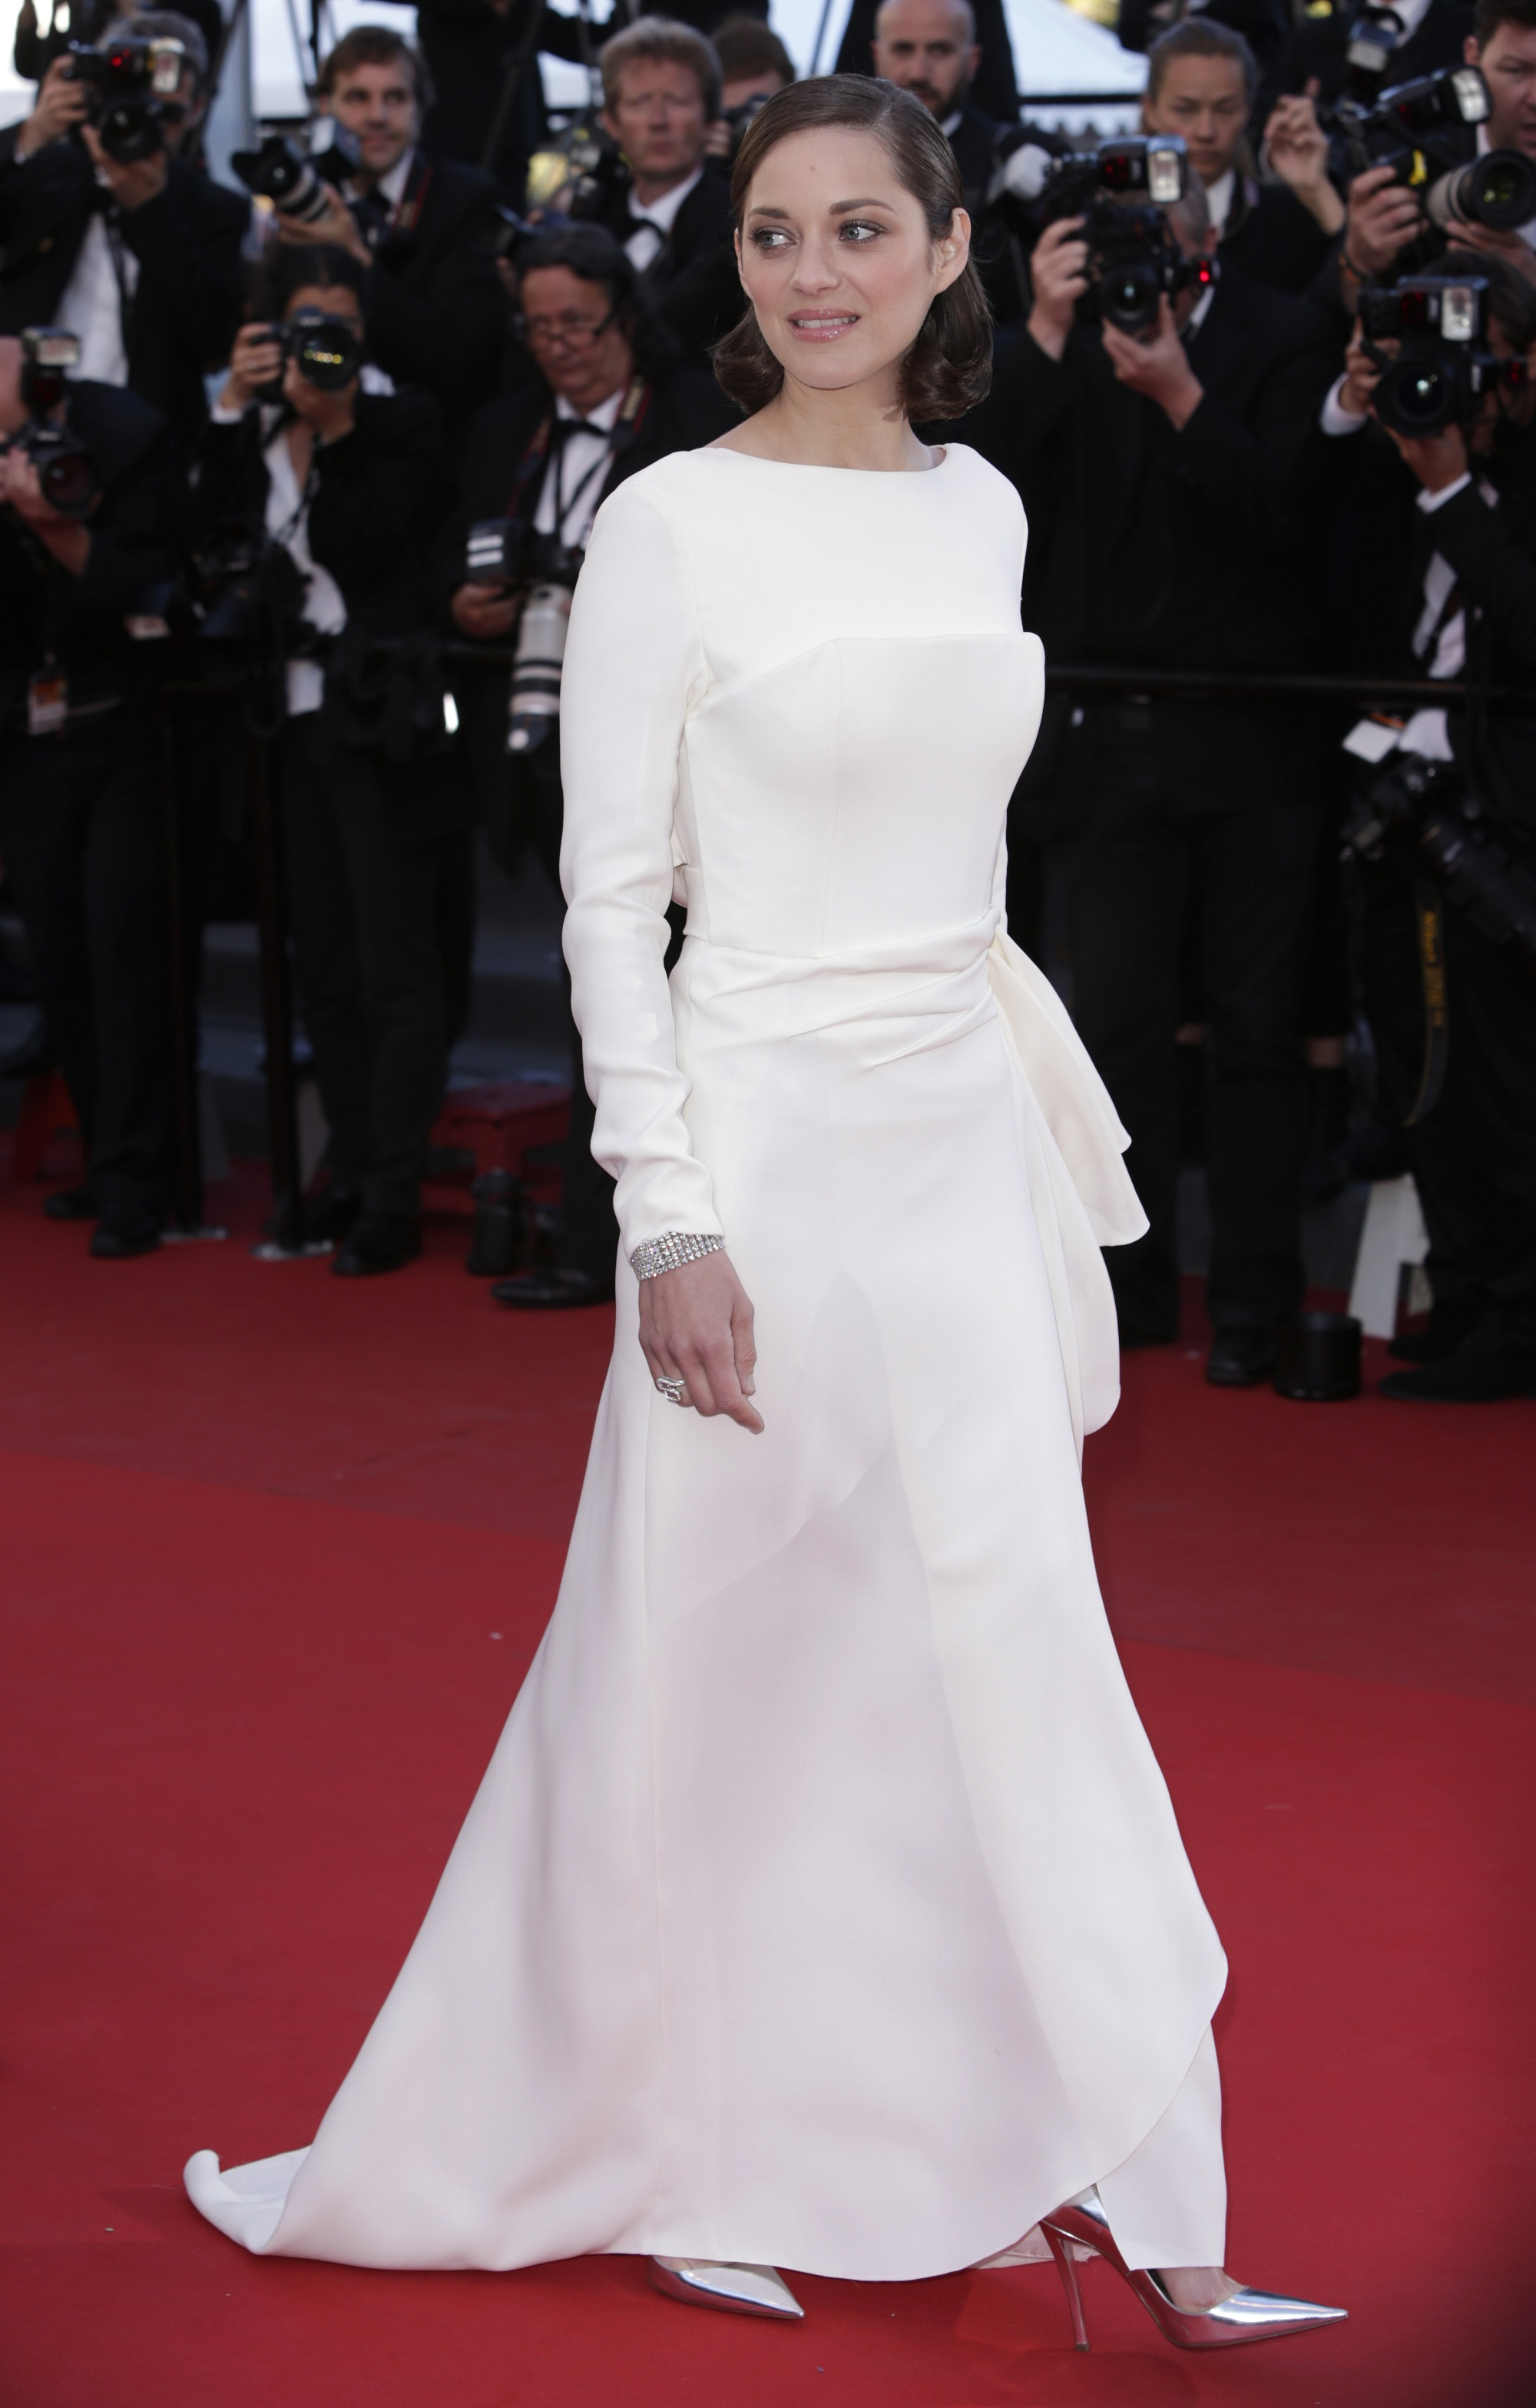 66th Cannes Film Festival - The Immigrant Screening